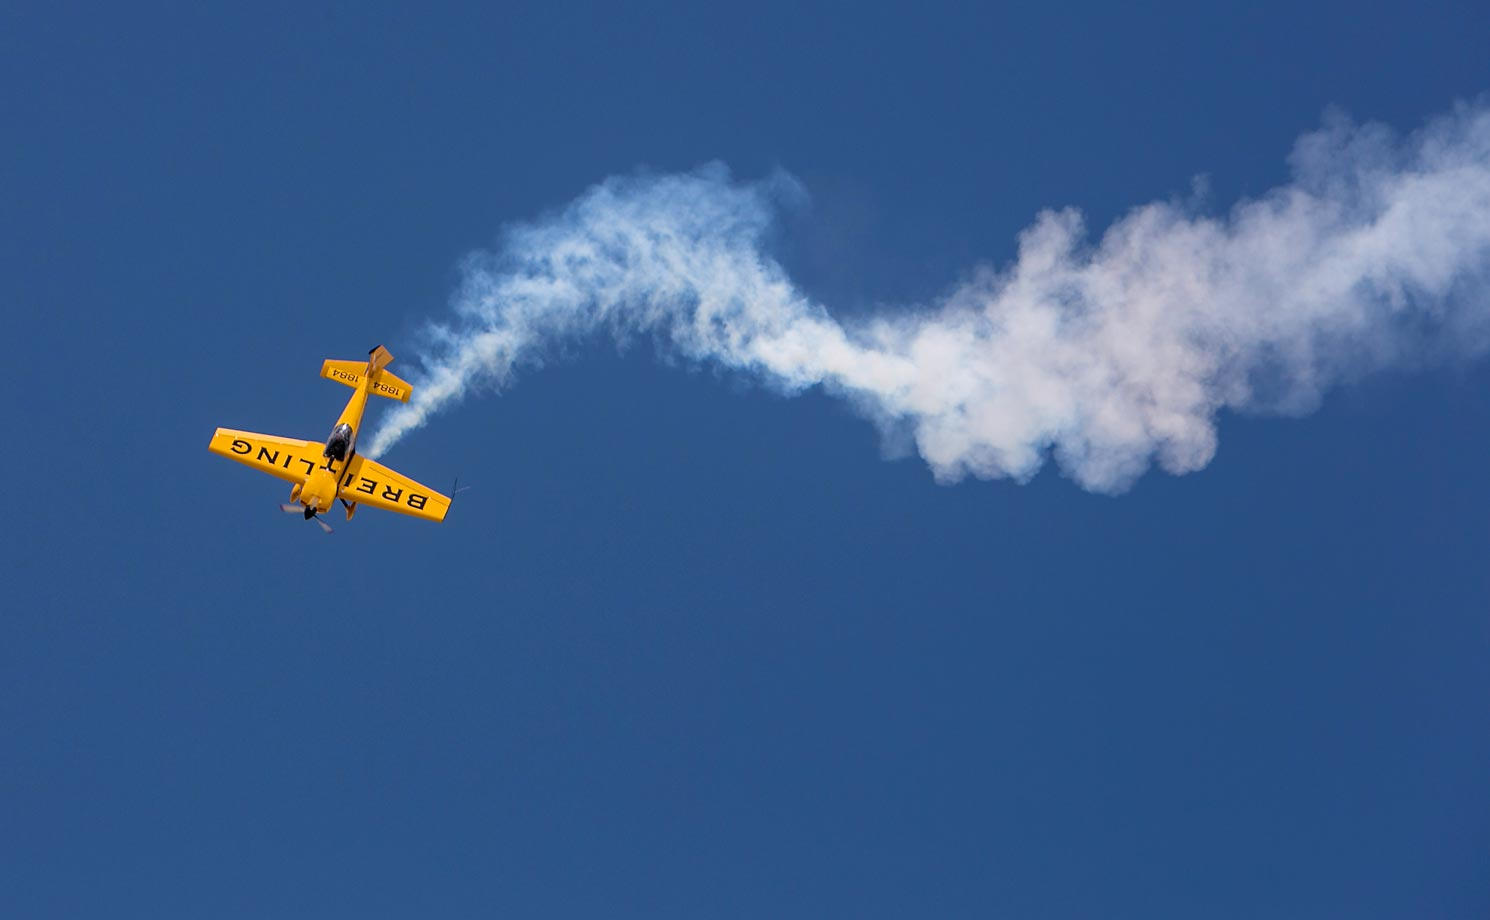 The Breitling stunt plane performs at the 2013 event. Fans at the 2014 gathering will be treated to the F-22 Raptor Demonstration Team, the L-39 Patriot Jet Team, the Breitling stunt pilot and a brand new entertainment area called The Drone Zone.